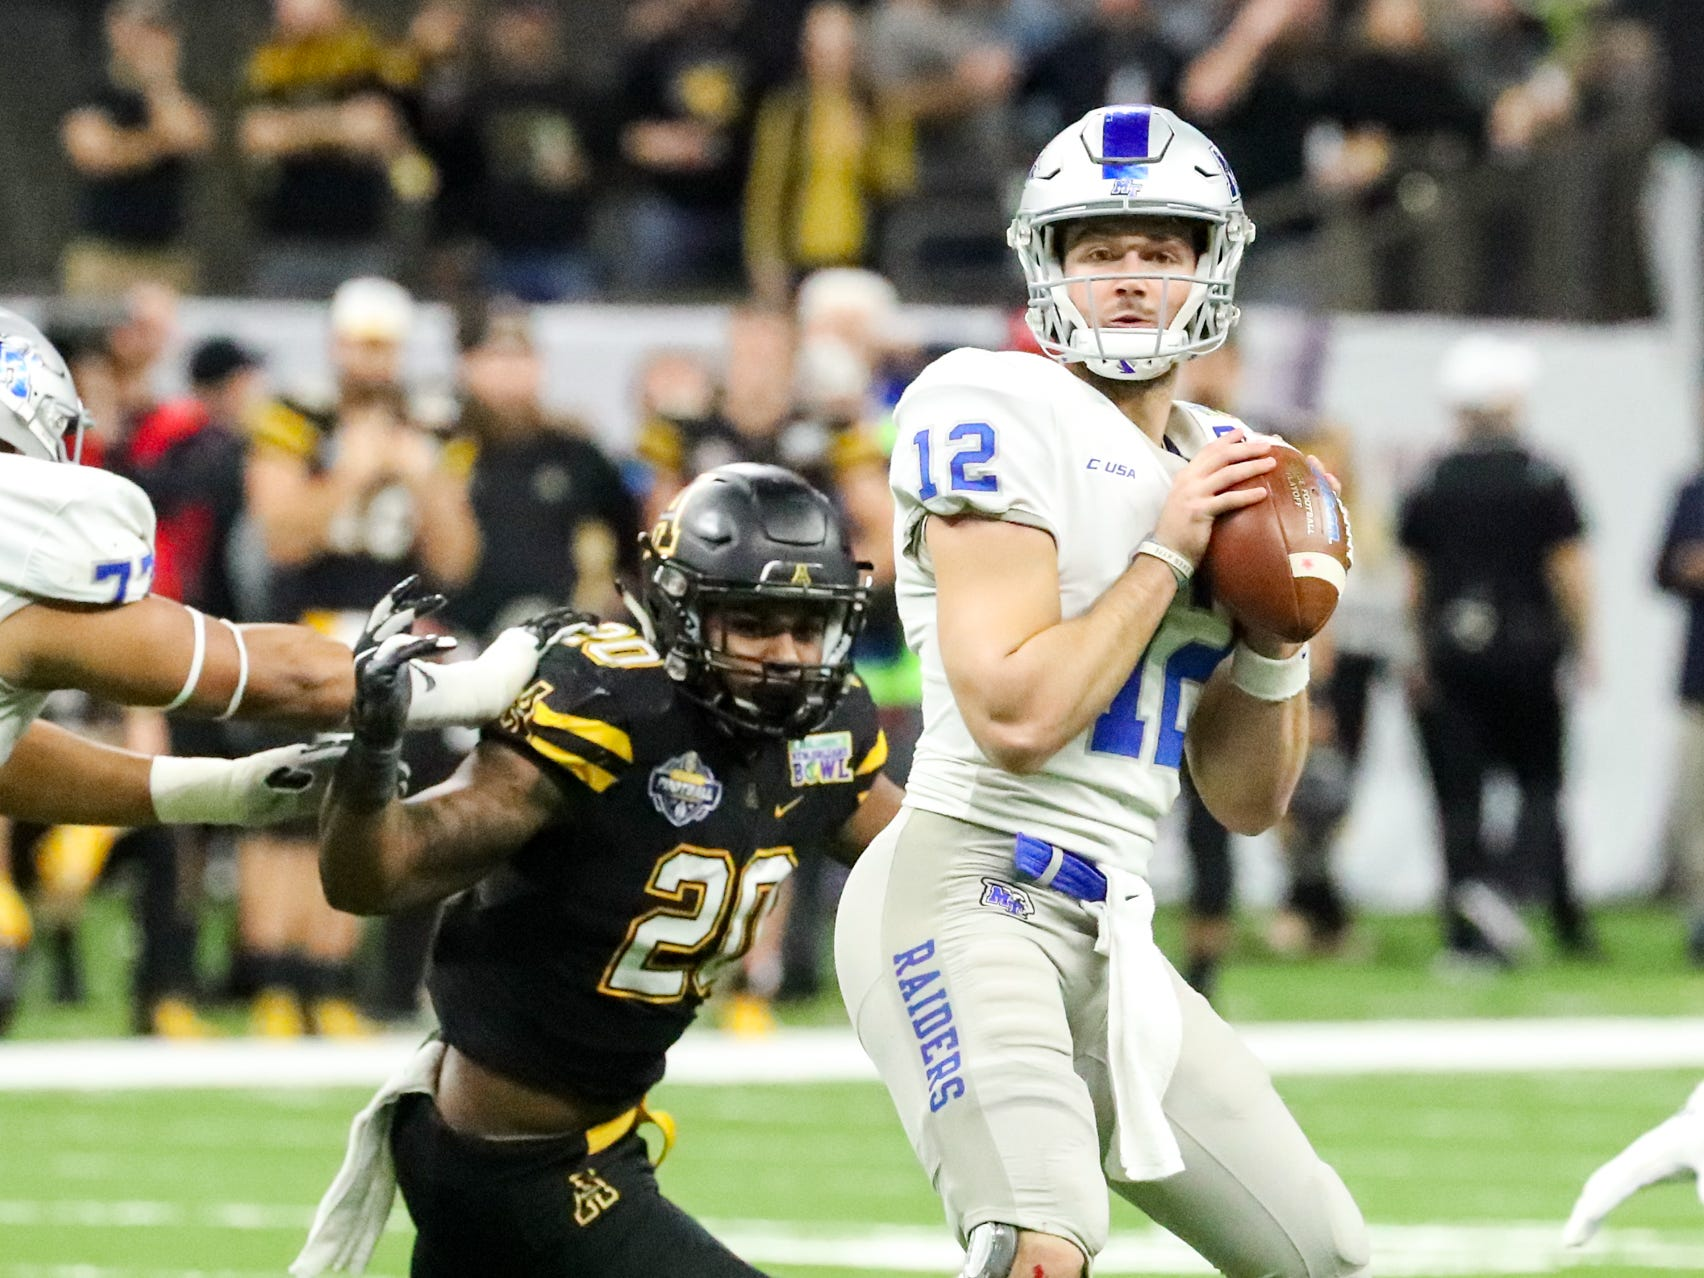 Middle Tennessee Blue Raiders quarterback Brent Stockstill (12) looks for an open receiver as Appalachian State Mountaineers linebacker Noel Cook (20) puts pressure on him during the first half at the Mercedes-Benz Superdome Saturday, Dec. 15, 2018, in New Orleans, La.